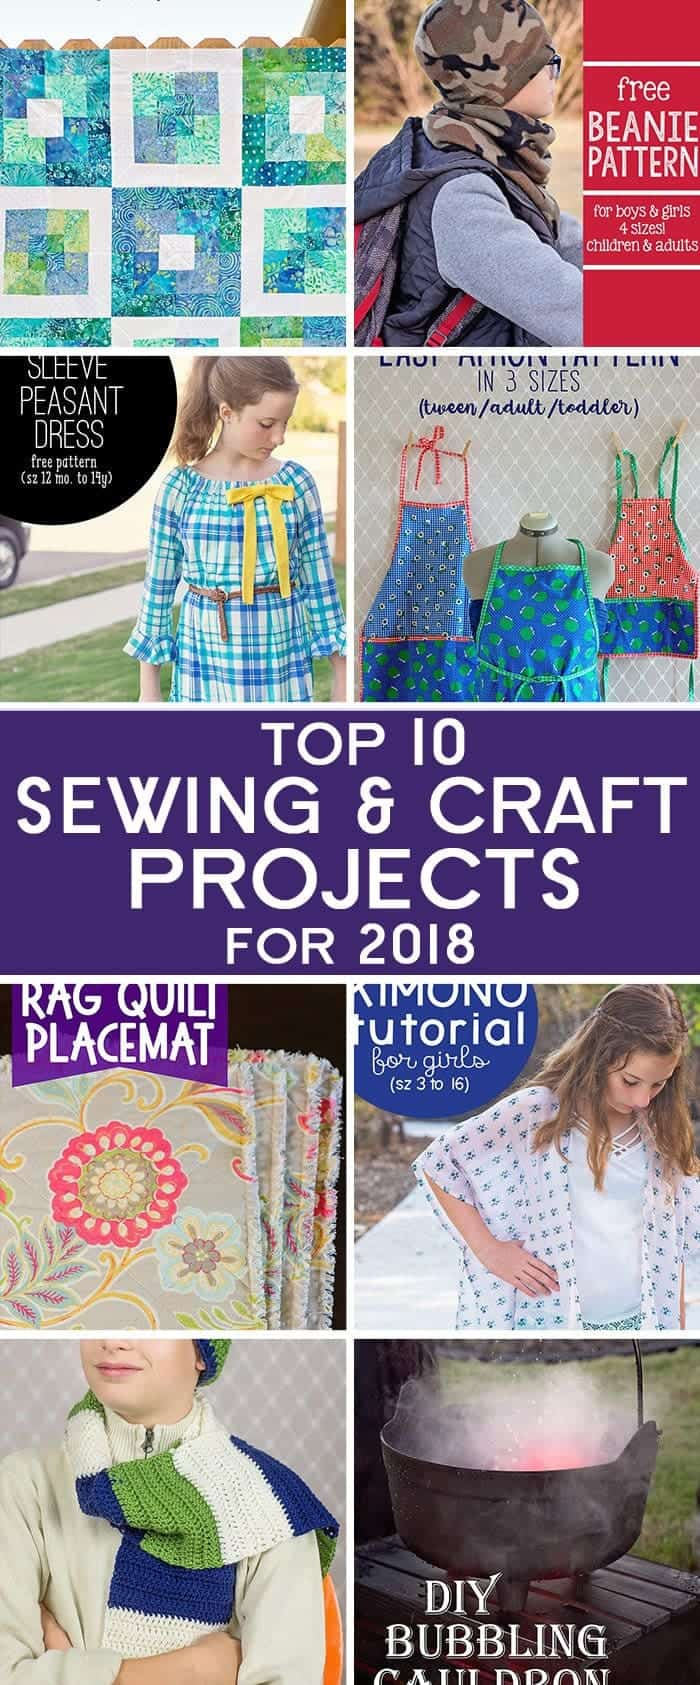 Top 10 Sewing and Craft Projects of 2018 from Scattered Thoughts of a Crafty Mom